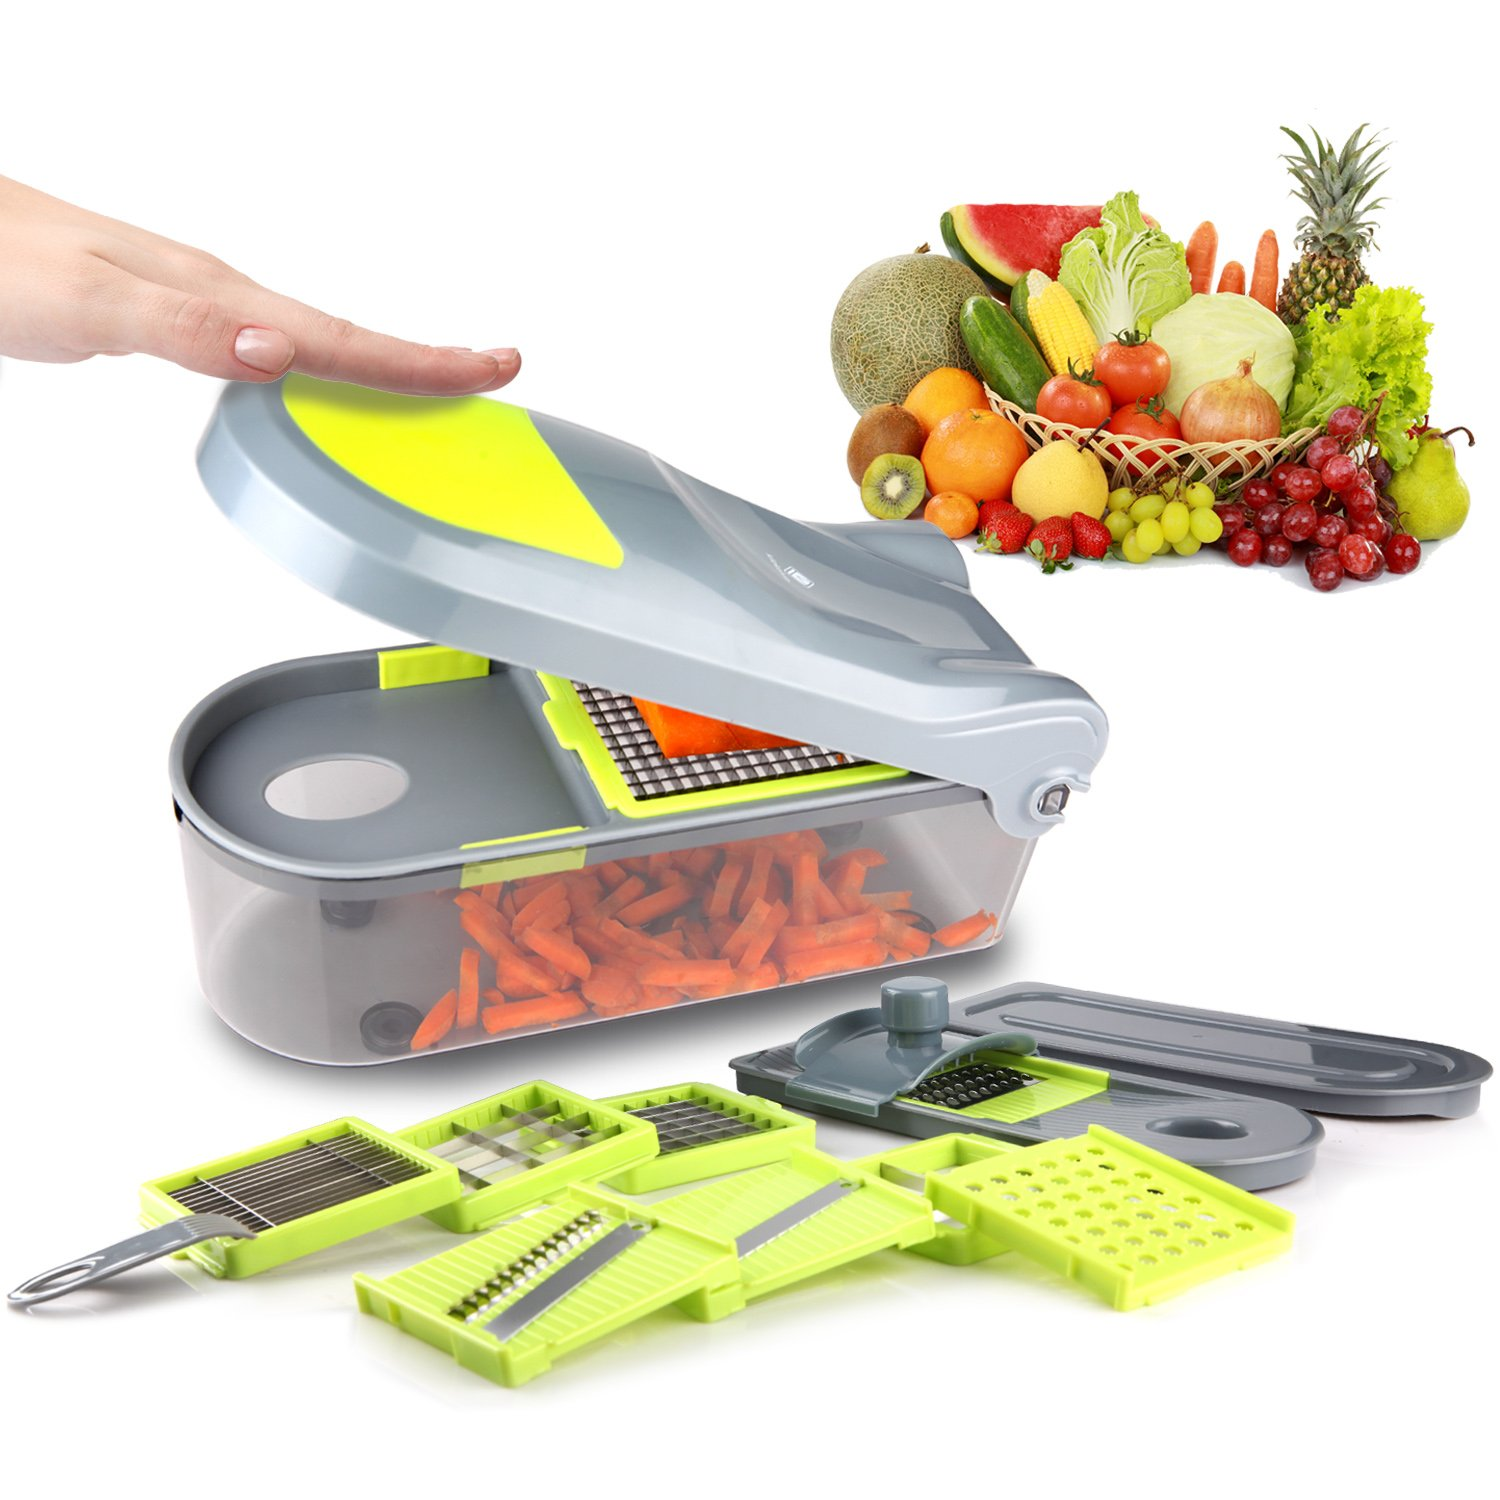 KILOKELVIN B460-A Food Cutter Slicer and Shredder - Slices and Shreds Fruits and Vegetables Chopper, Food Container, Safety Food Holder, All-in-One Vegetable Cutter Vegetable Slic LTD.